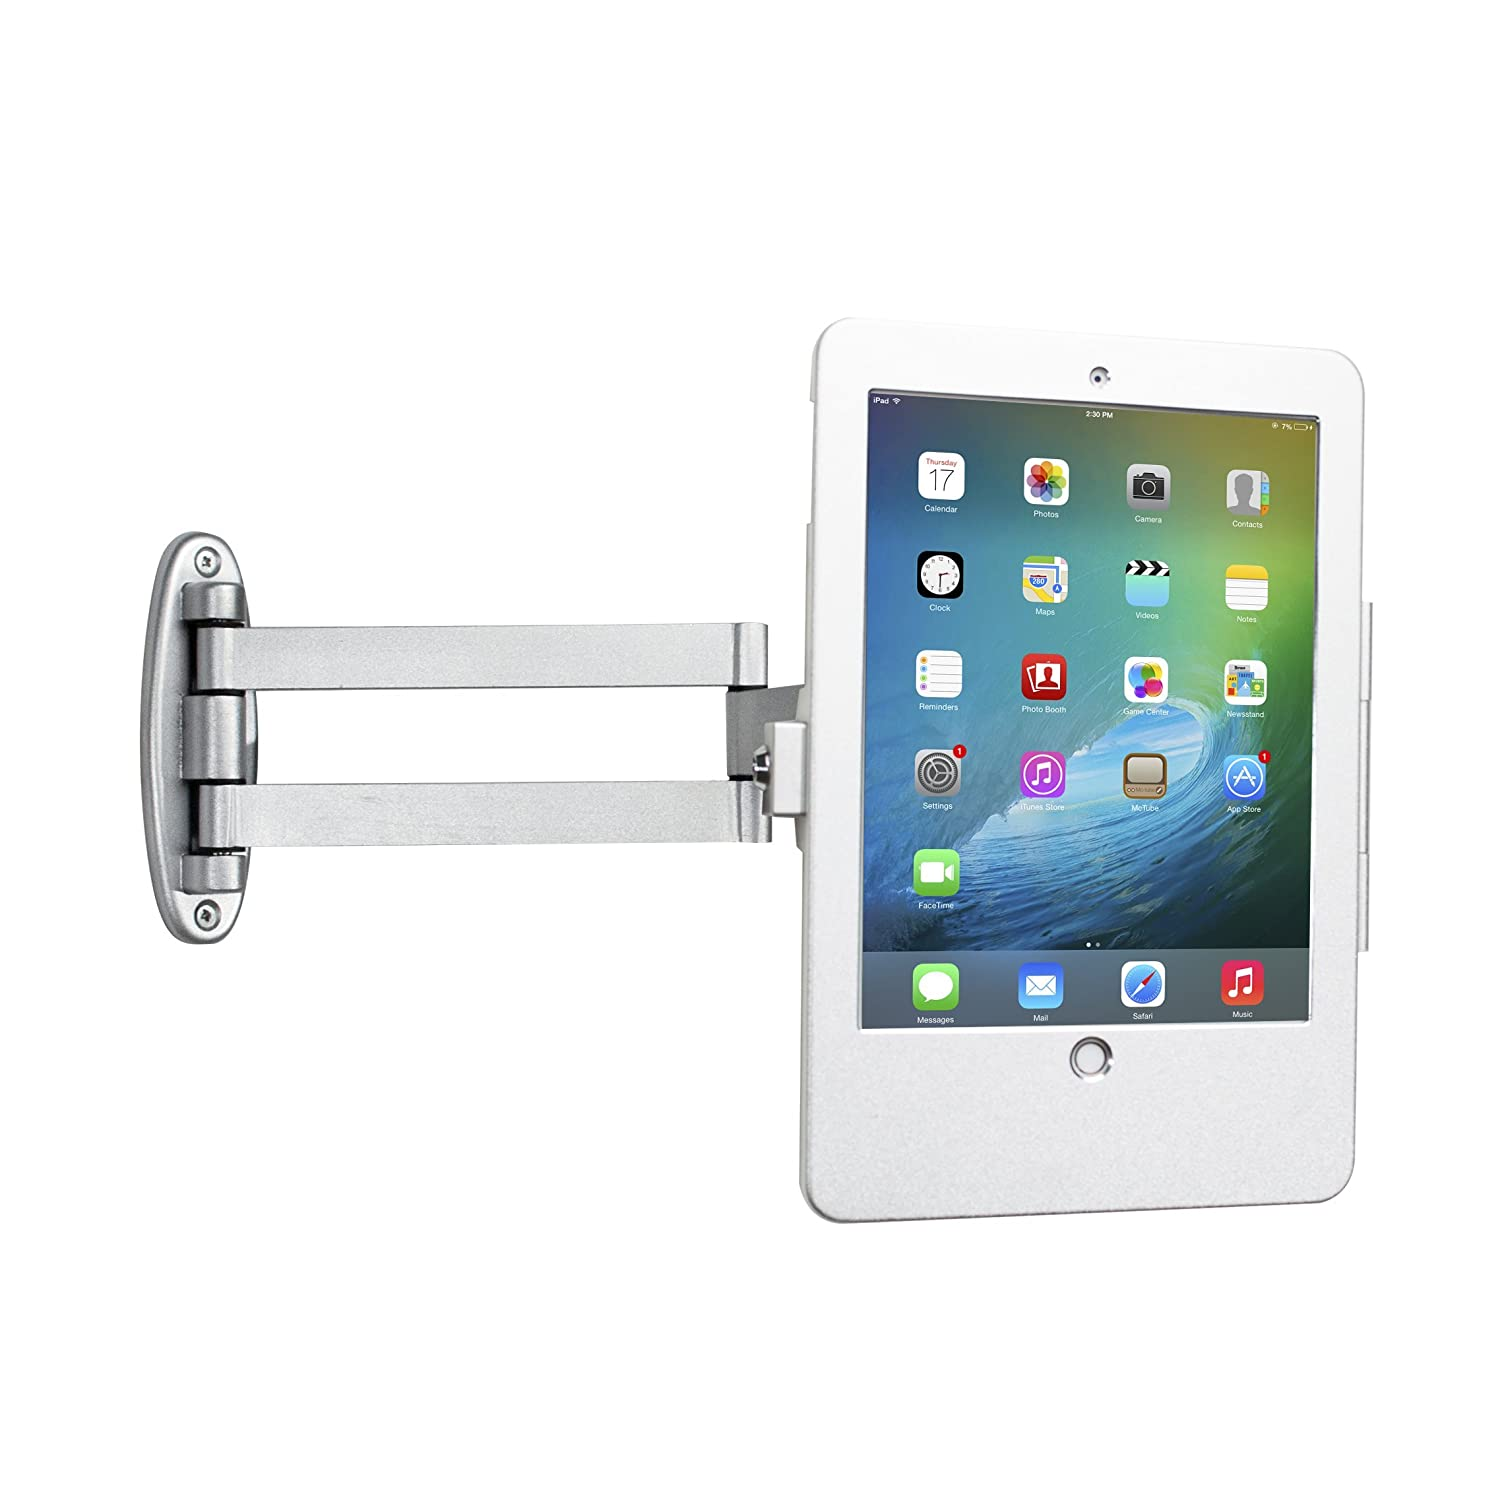 CTA Digital PAD-AWSEP Articulating Wall Mounting Security Enclosure for iPad Pro 12.9